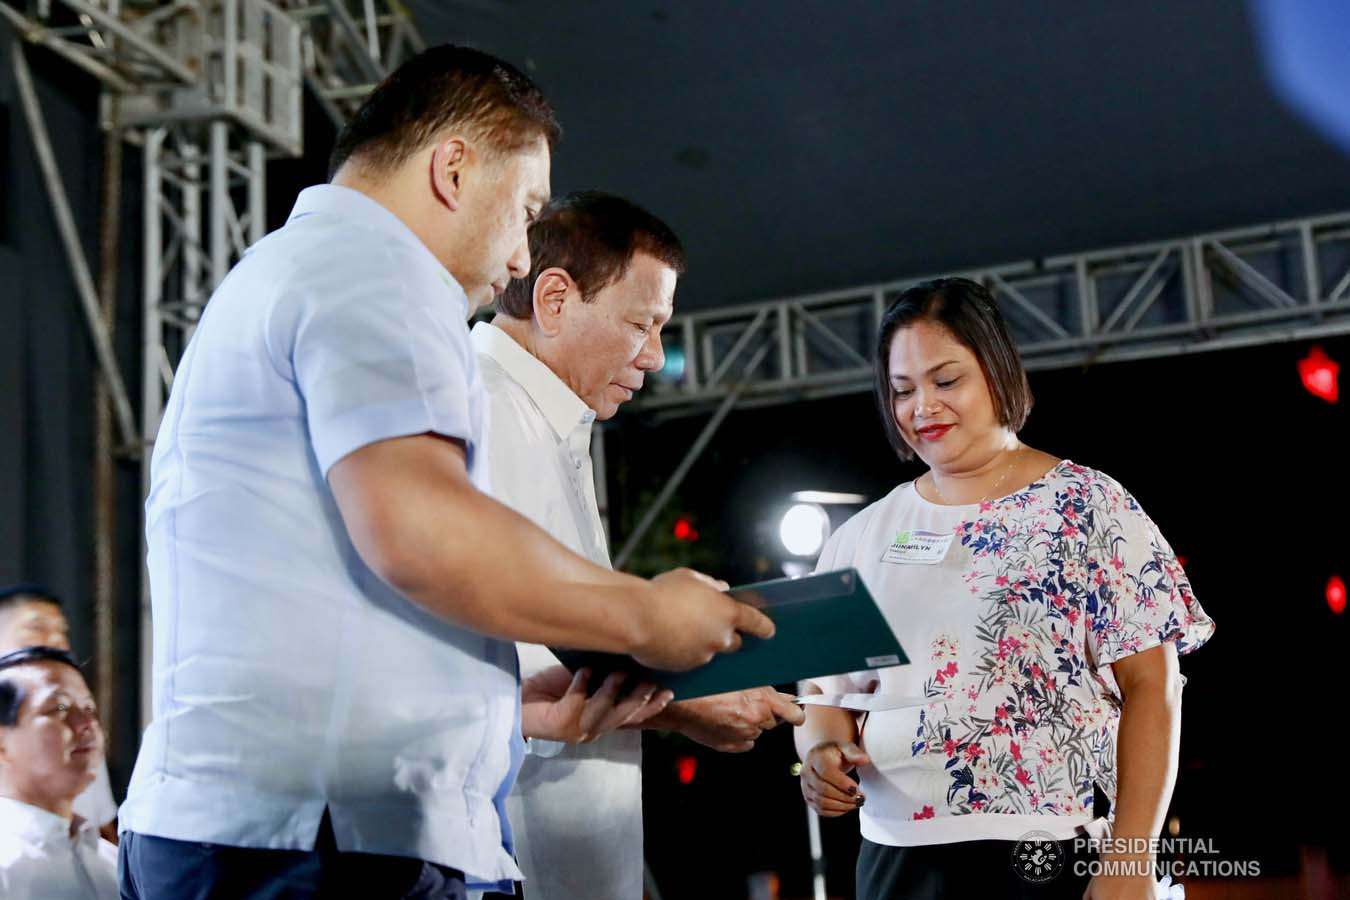 President Rodrigo Roa Duterte leads the ceremonial turnover of housing certificates and checks to the beneficiaries of the killed-in-action (KIA) soldiers and killed-in-police operation (KIPO) personnel under the Comprehensive Social Benefits Program during the Thanksgiving party at the Malacañan Palace on December 10, 2019. Assisting the President is National Housing Authority General Manager Marcelino Escalada Jr. RICHARD MADELO/PRESIDENTIAL PHOTO